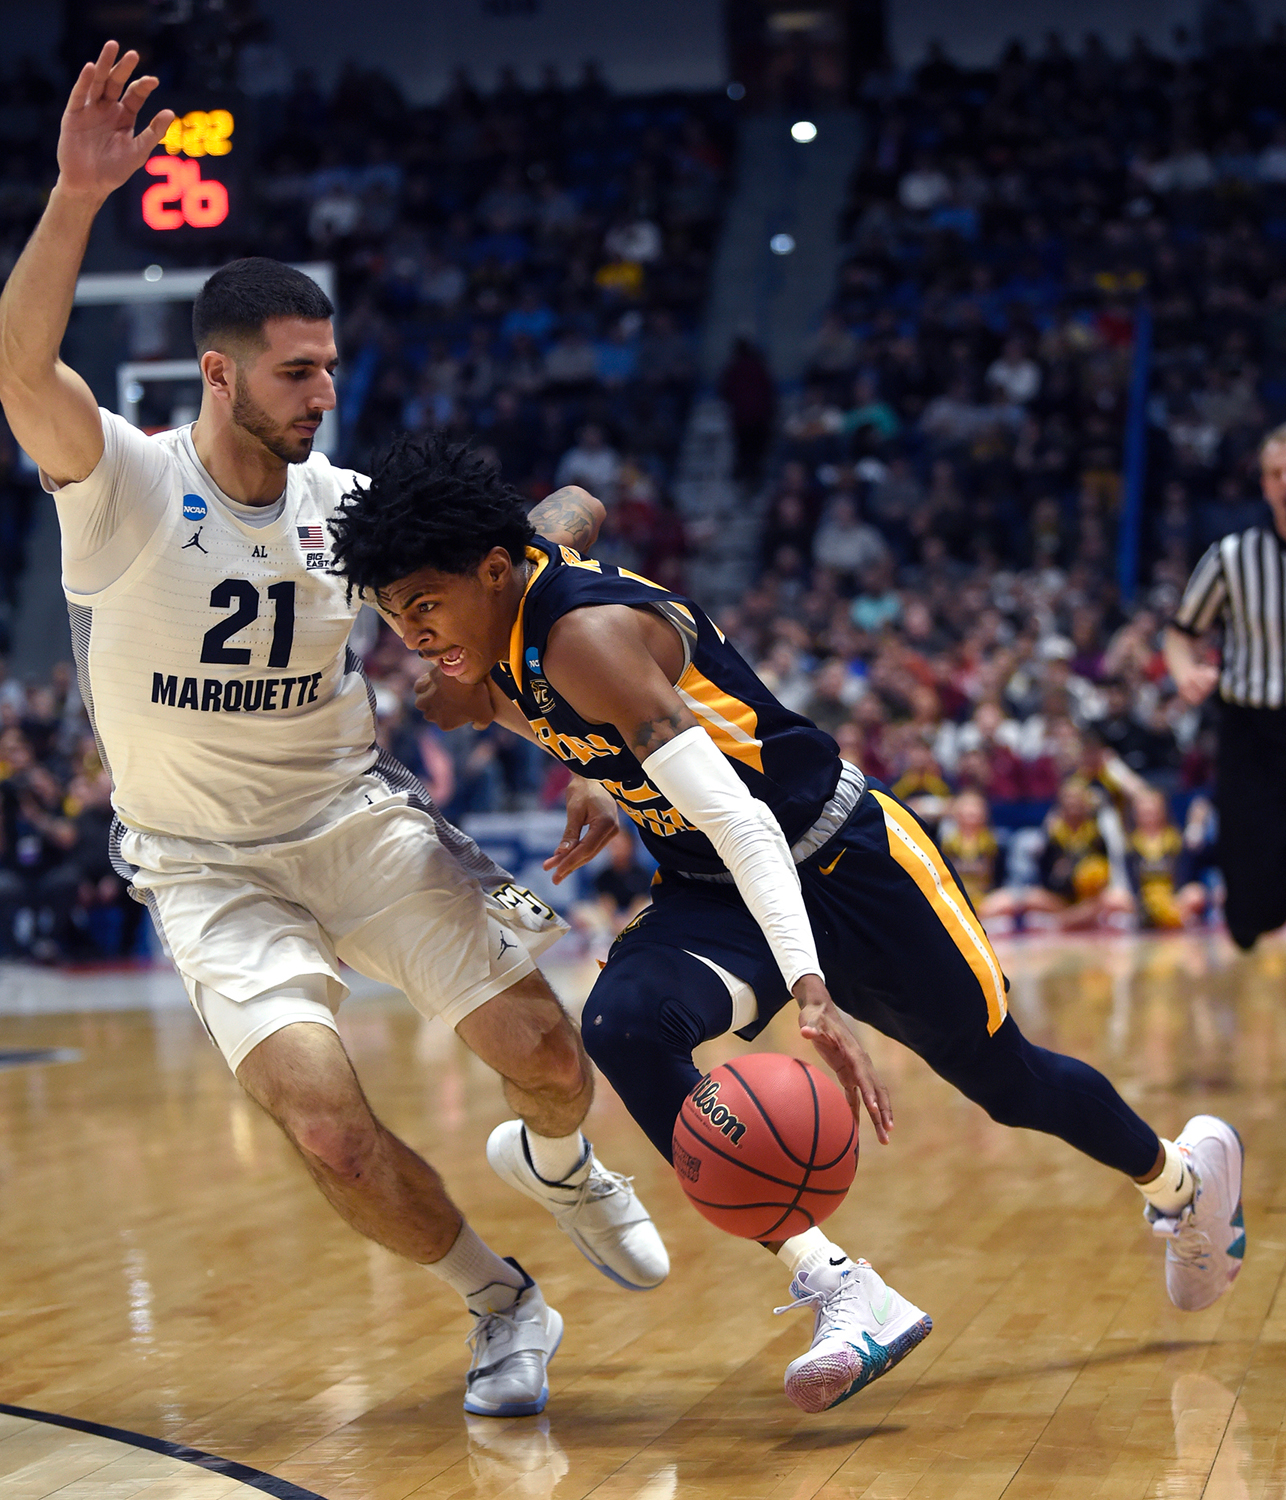 Murray State's Ja Morant drives to the basket against Marquette's Joseph Chartouny (21) in the first round of the NCAA Tournament at the XL Center in Hartford, Connecticut, on Thursday. Murray State advanced, 83-64.